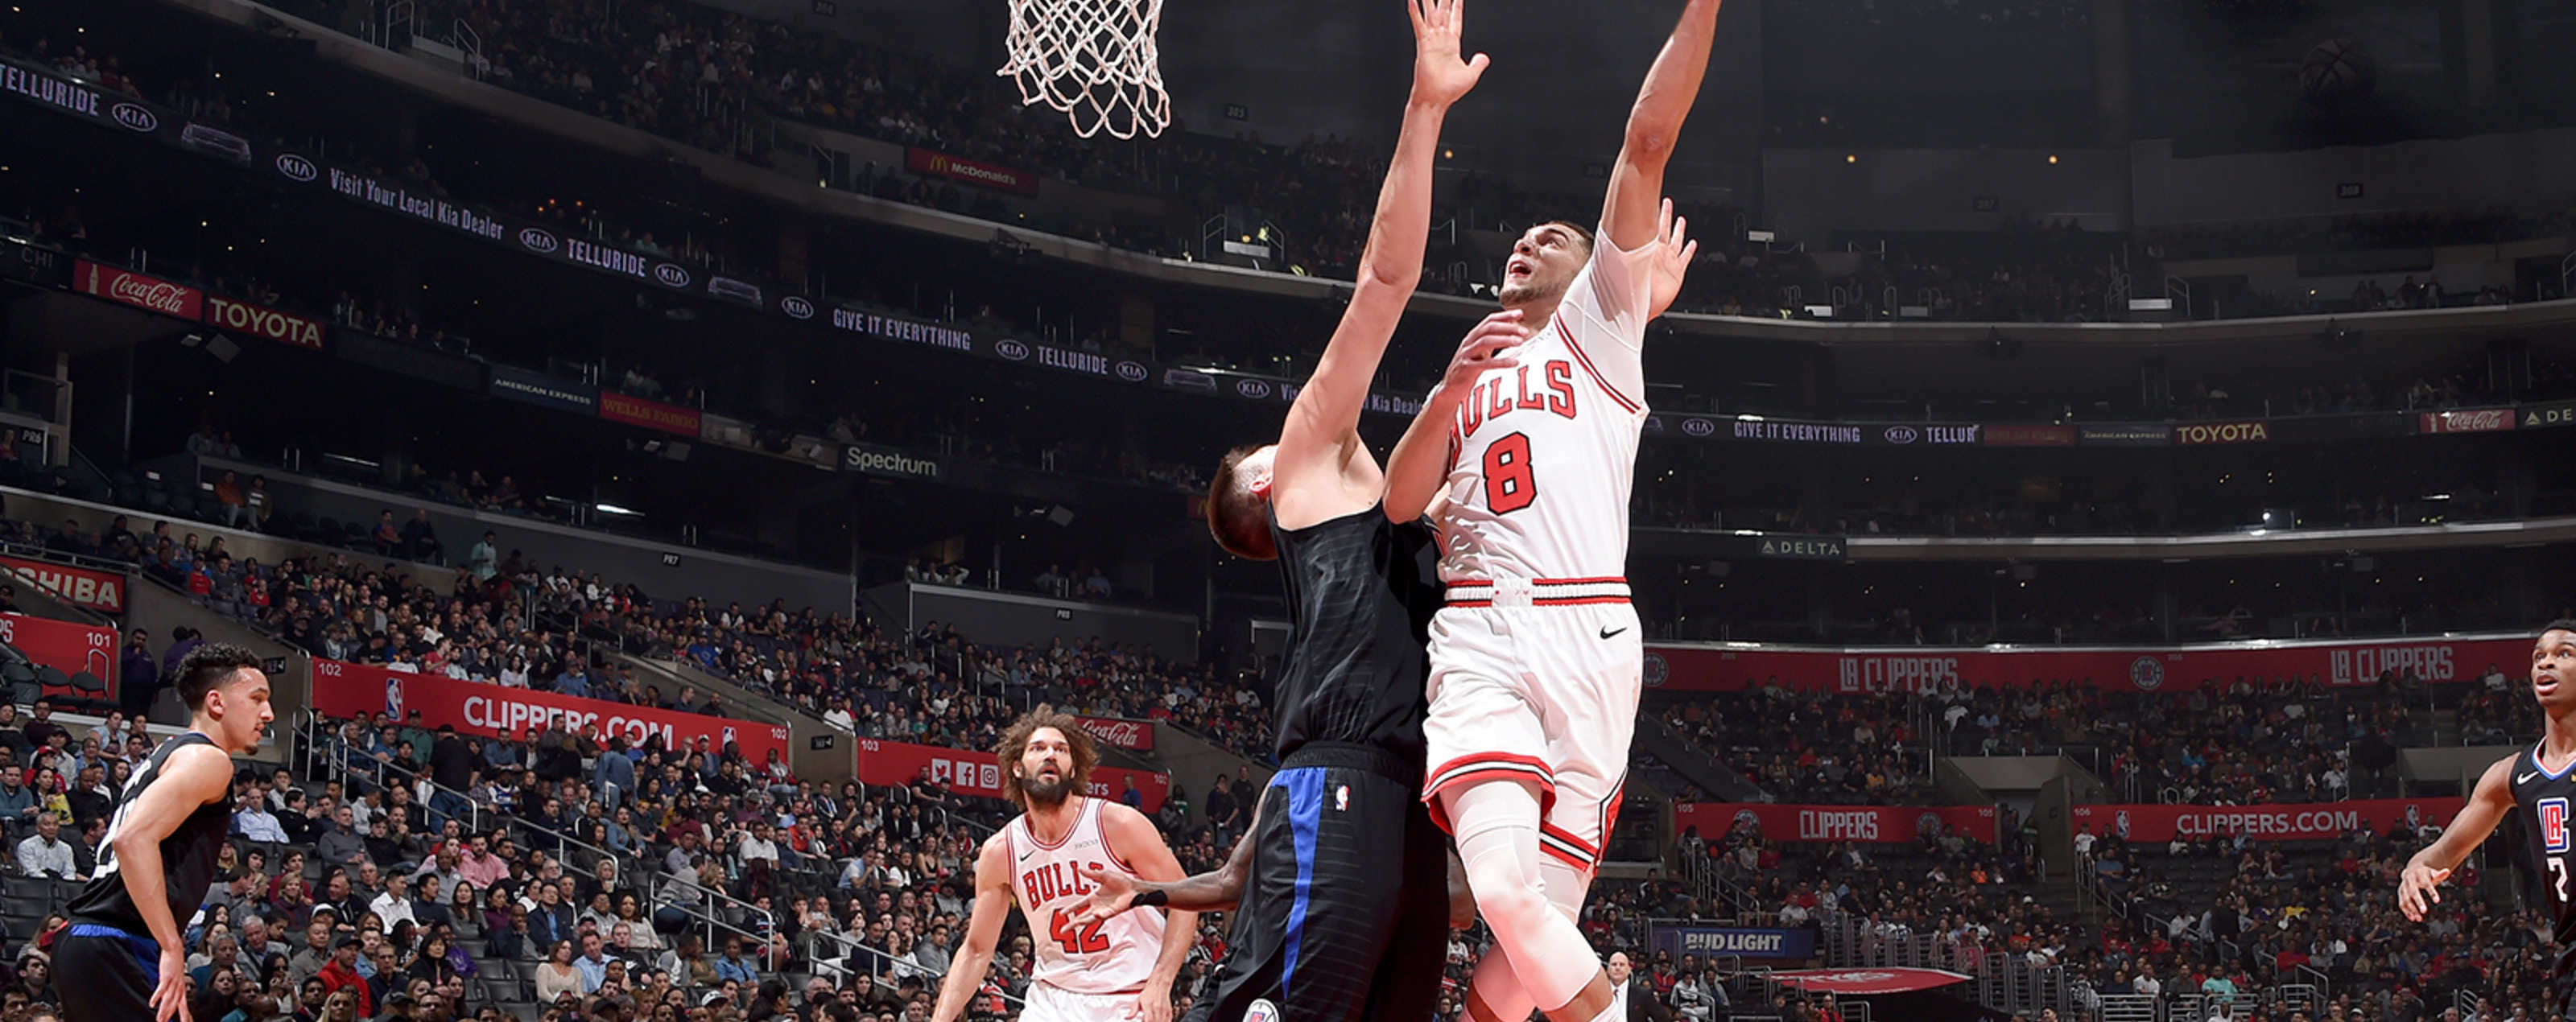 Zach LaVine shoots the ball against the Los Angeles Clippers